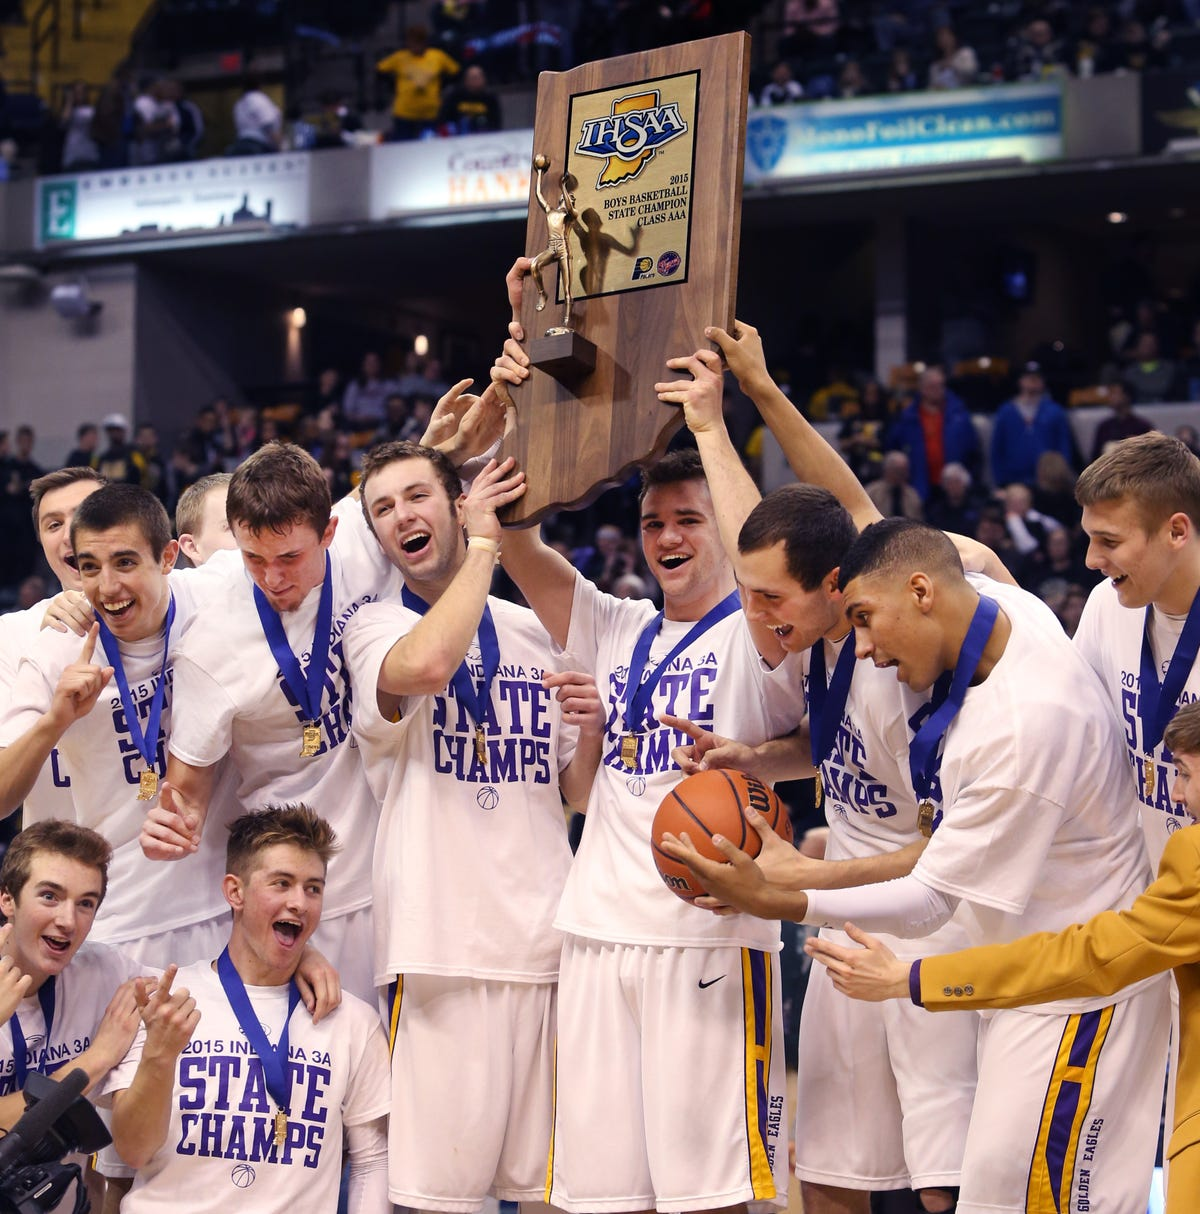 HS boys basketball preview: Sectional-by-sectional breakdown